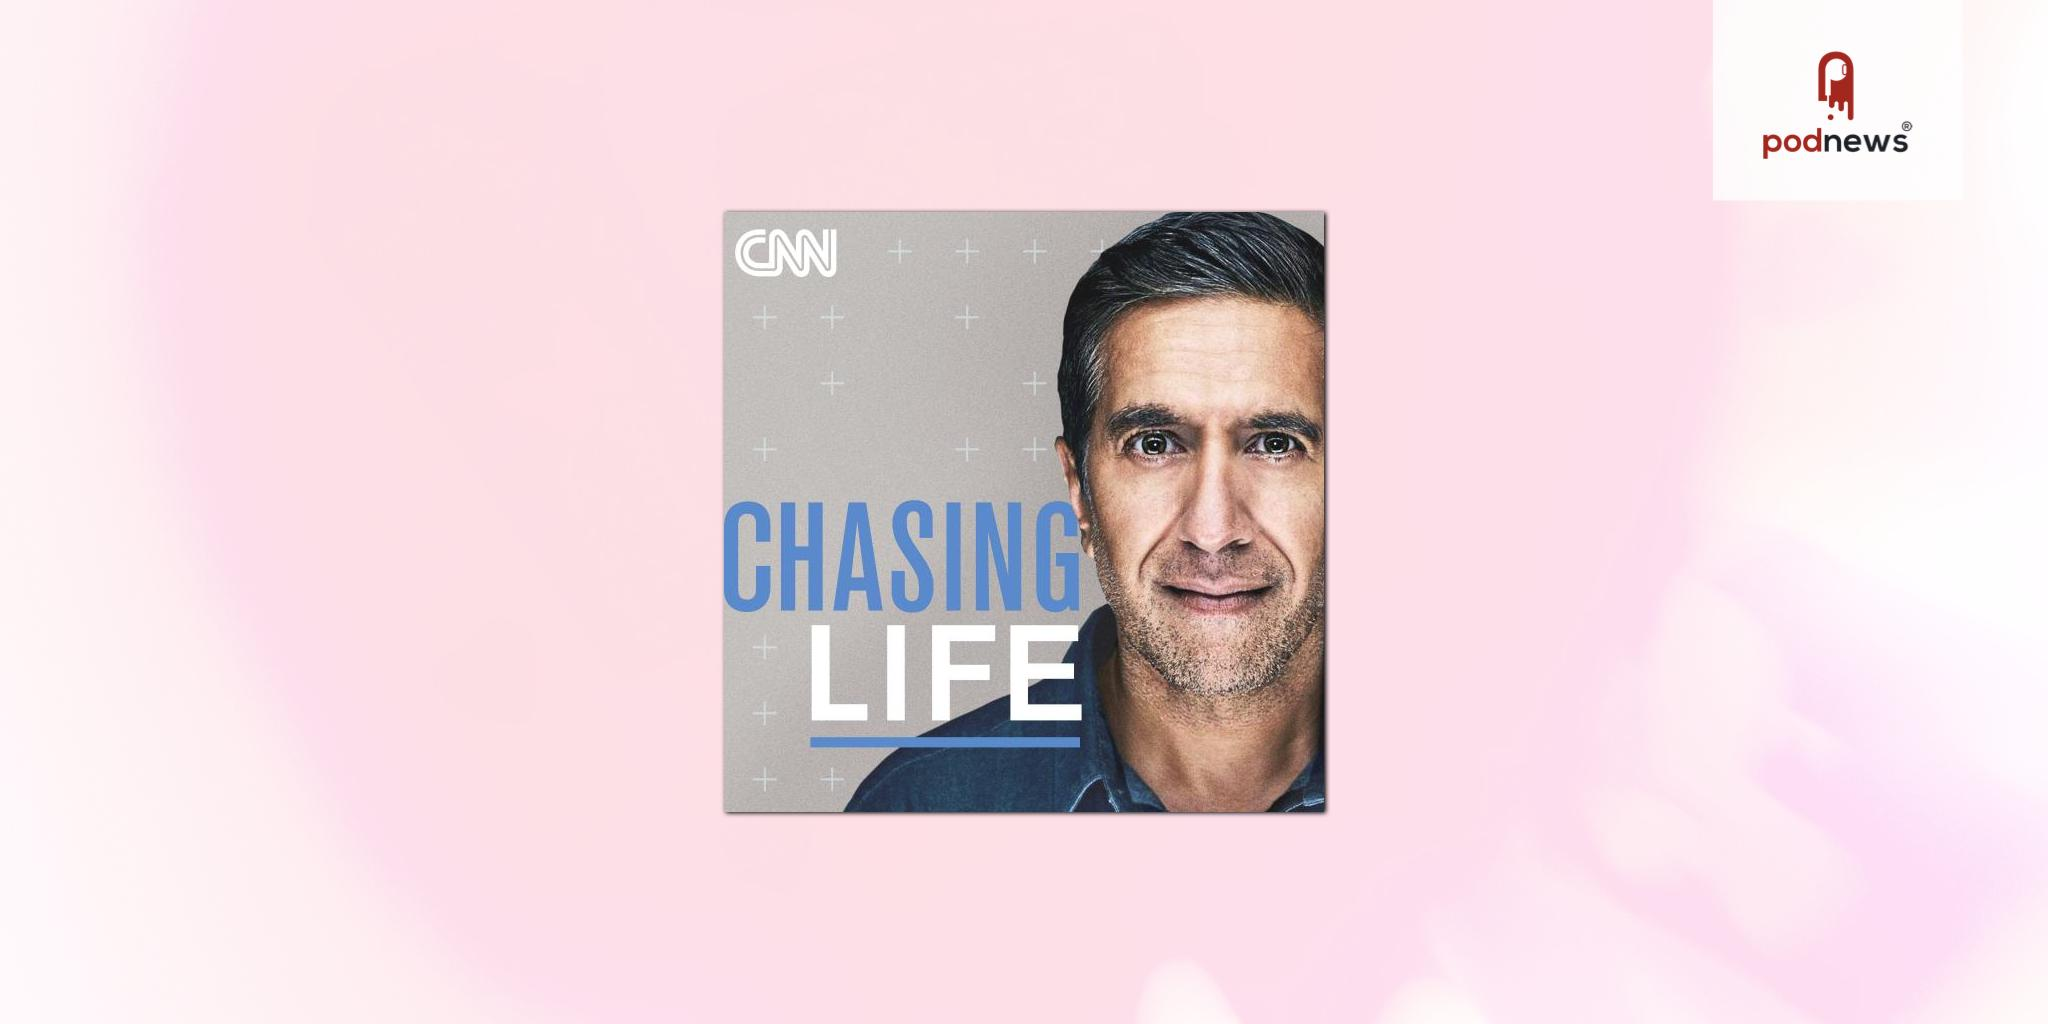 CNN Audio to debut new podcast 'Chasing Life' with Dr Sanjay Gupta